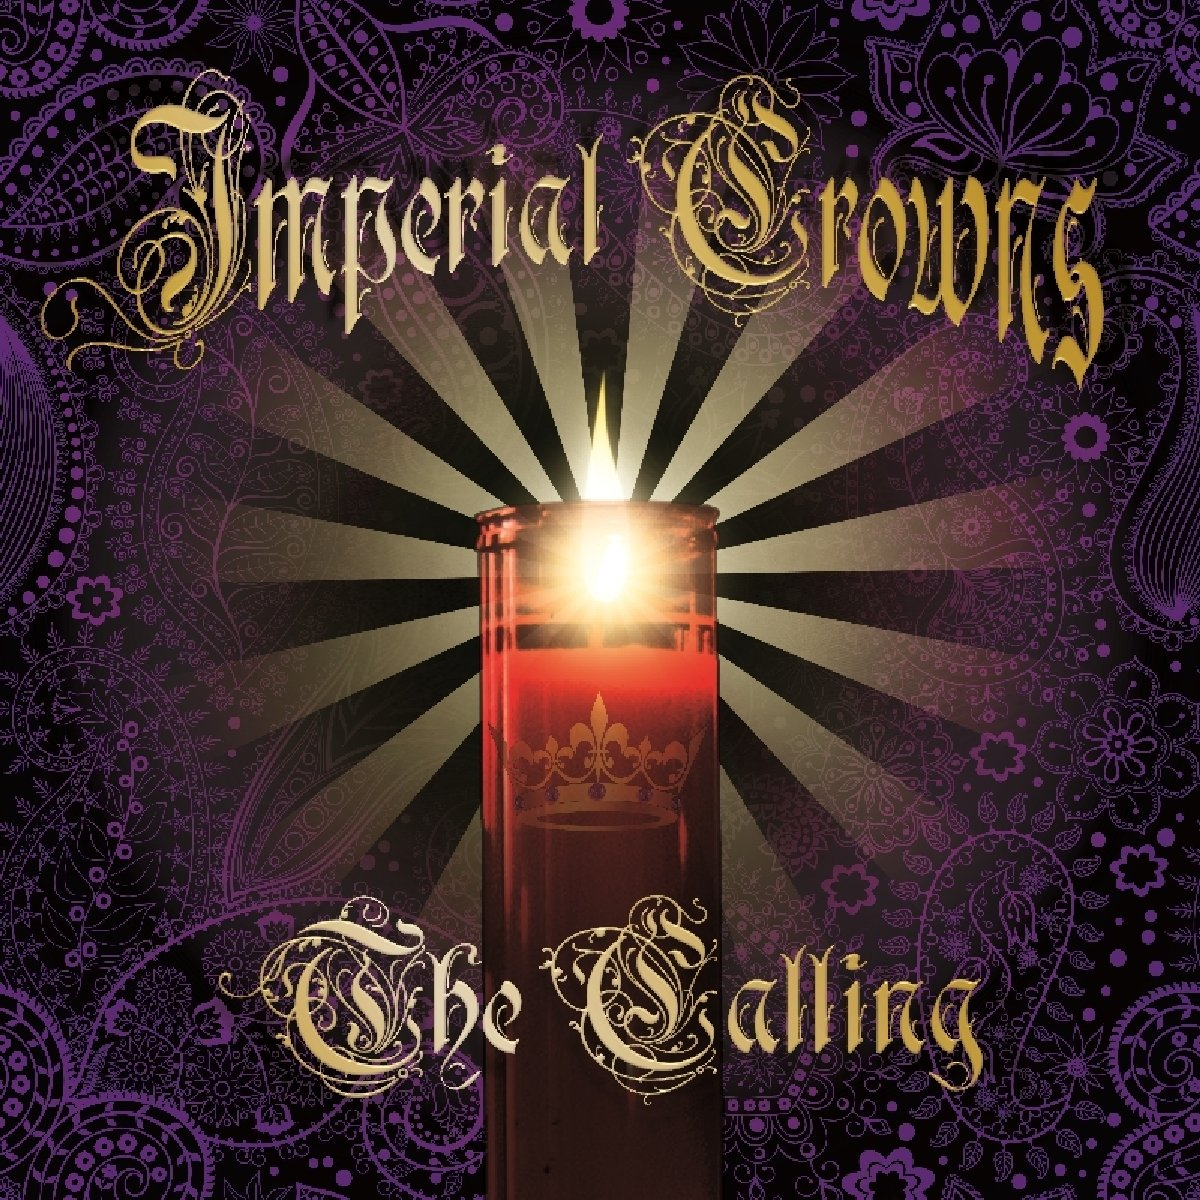 The Calling: Imperial Crowns, Imperial Crowns, Imperial Crowns: Amazon.fr: CD et Vinyles}